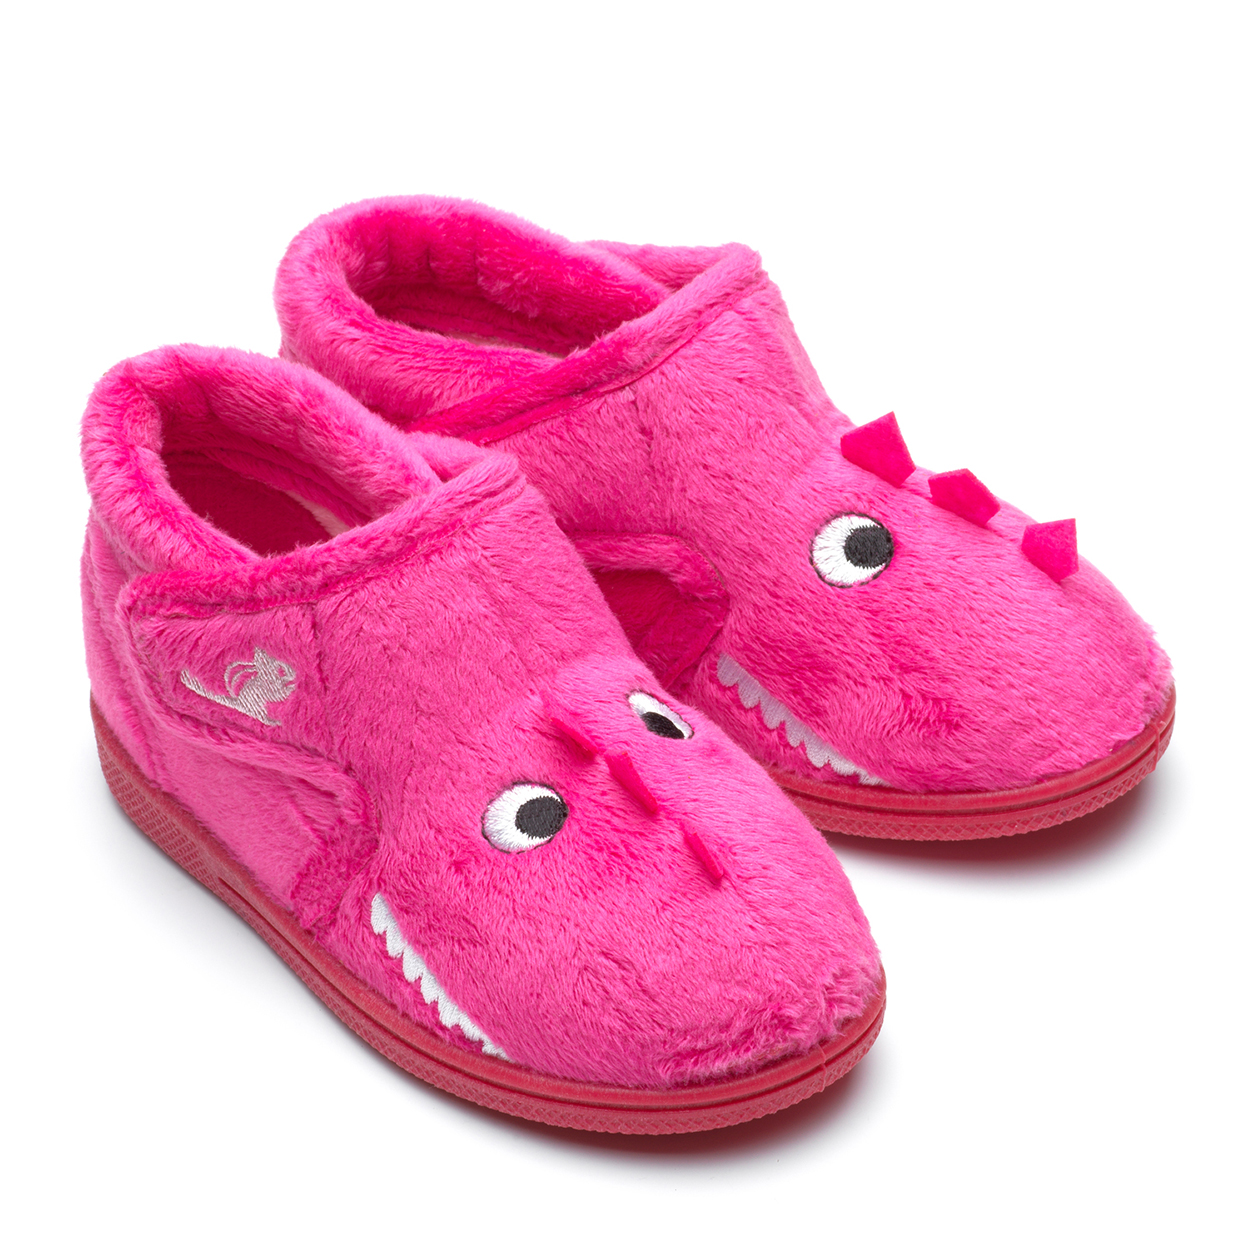 Chipmunks Daniella Dinosaur Pink Slipper